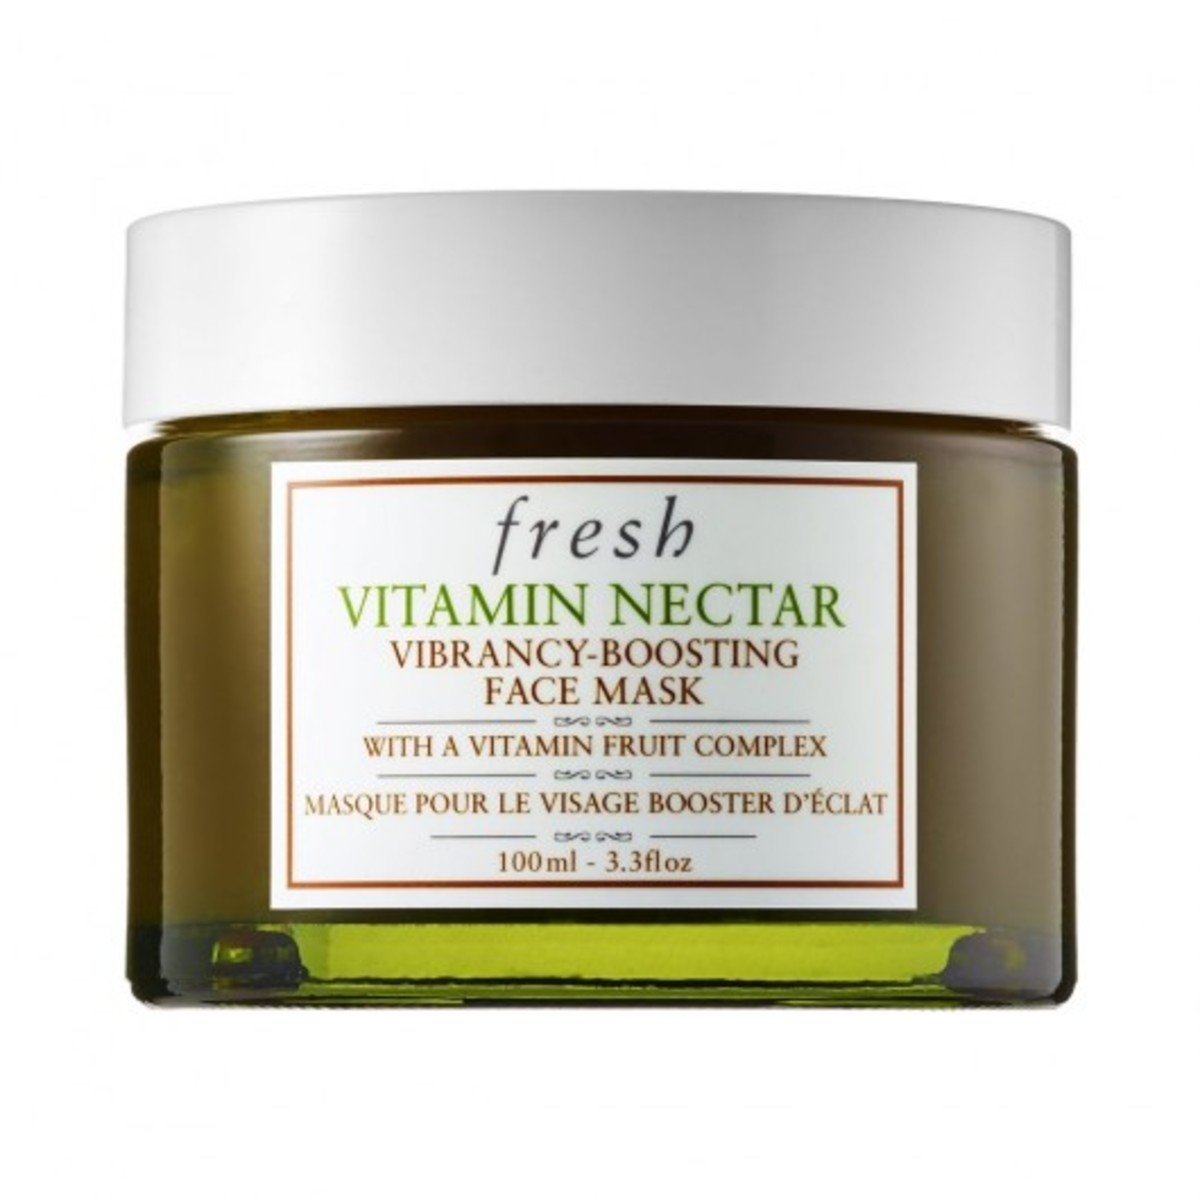 VITAMIN NECTAR VIDRANCY-BOOSTING FACE MASK 100ml - [Parallel Import Product]